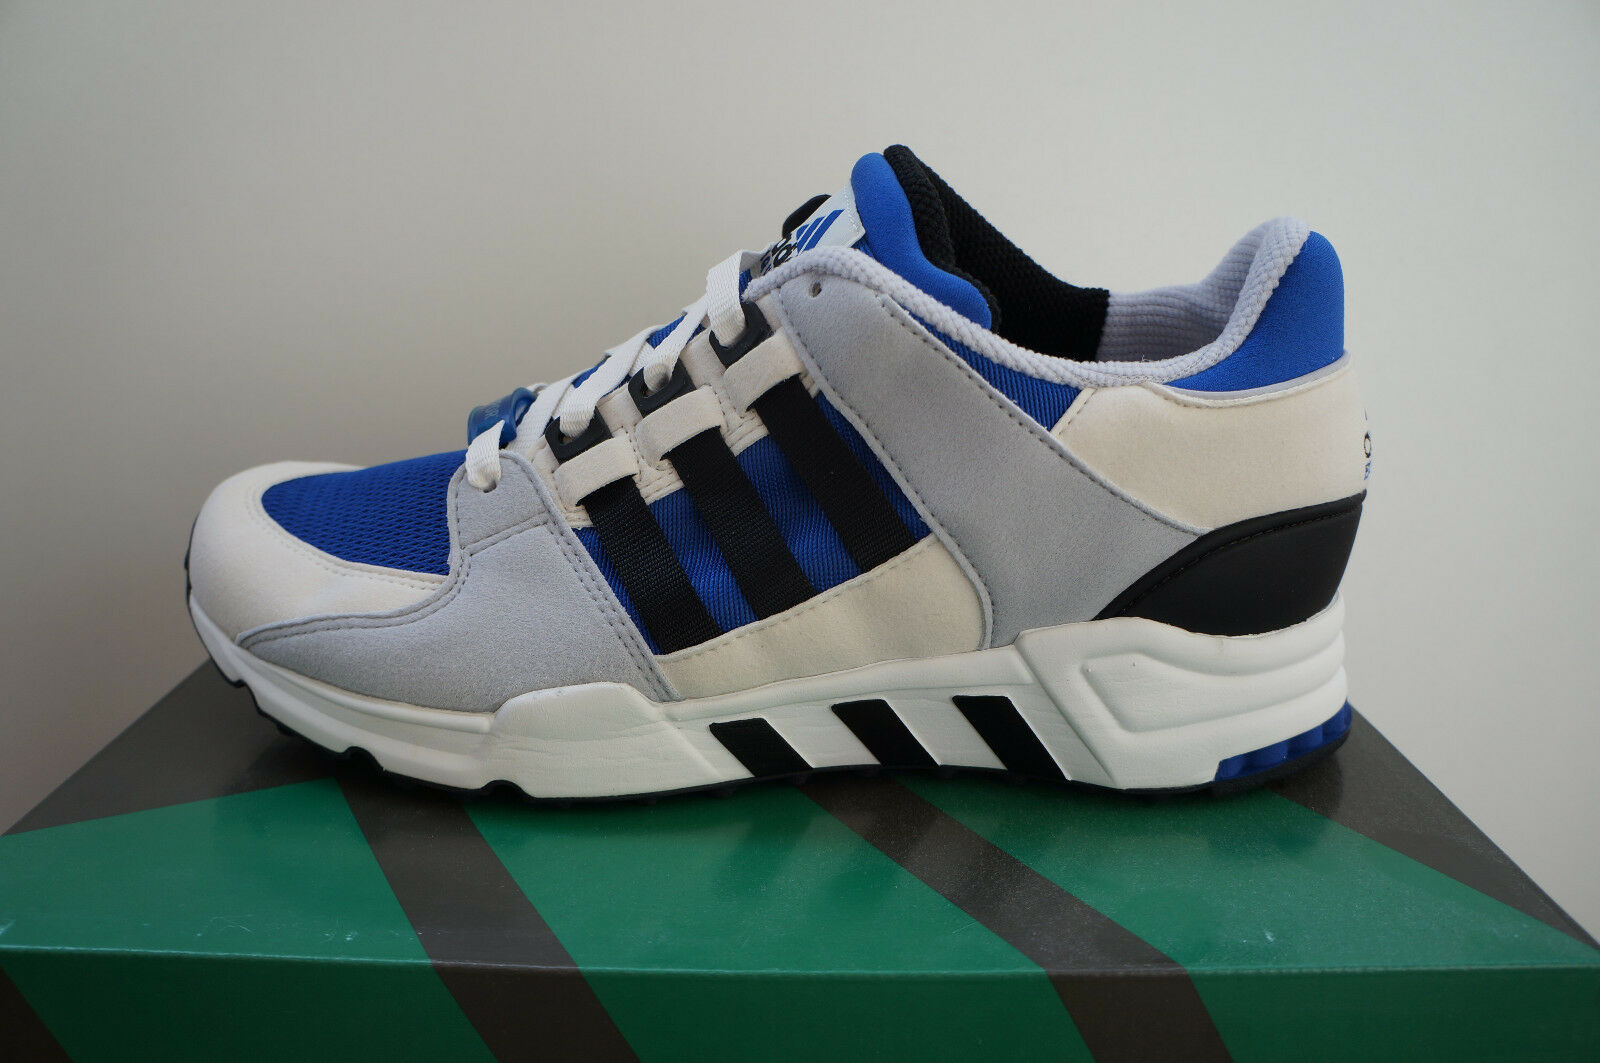 Adidas EQT support og azul m25105 equipment torsion ZX 8000 9000